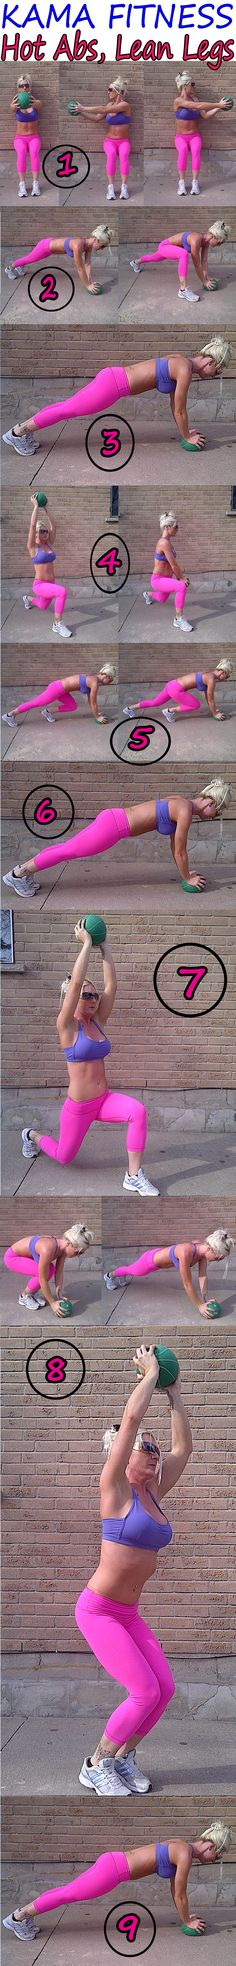 Hot Abs, Lean Legs Workout!